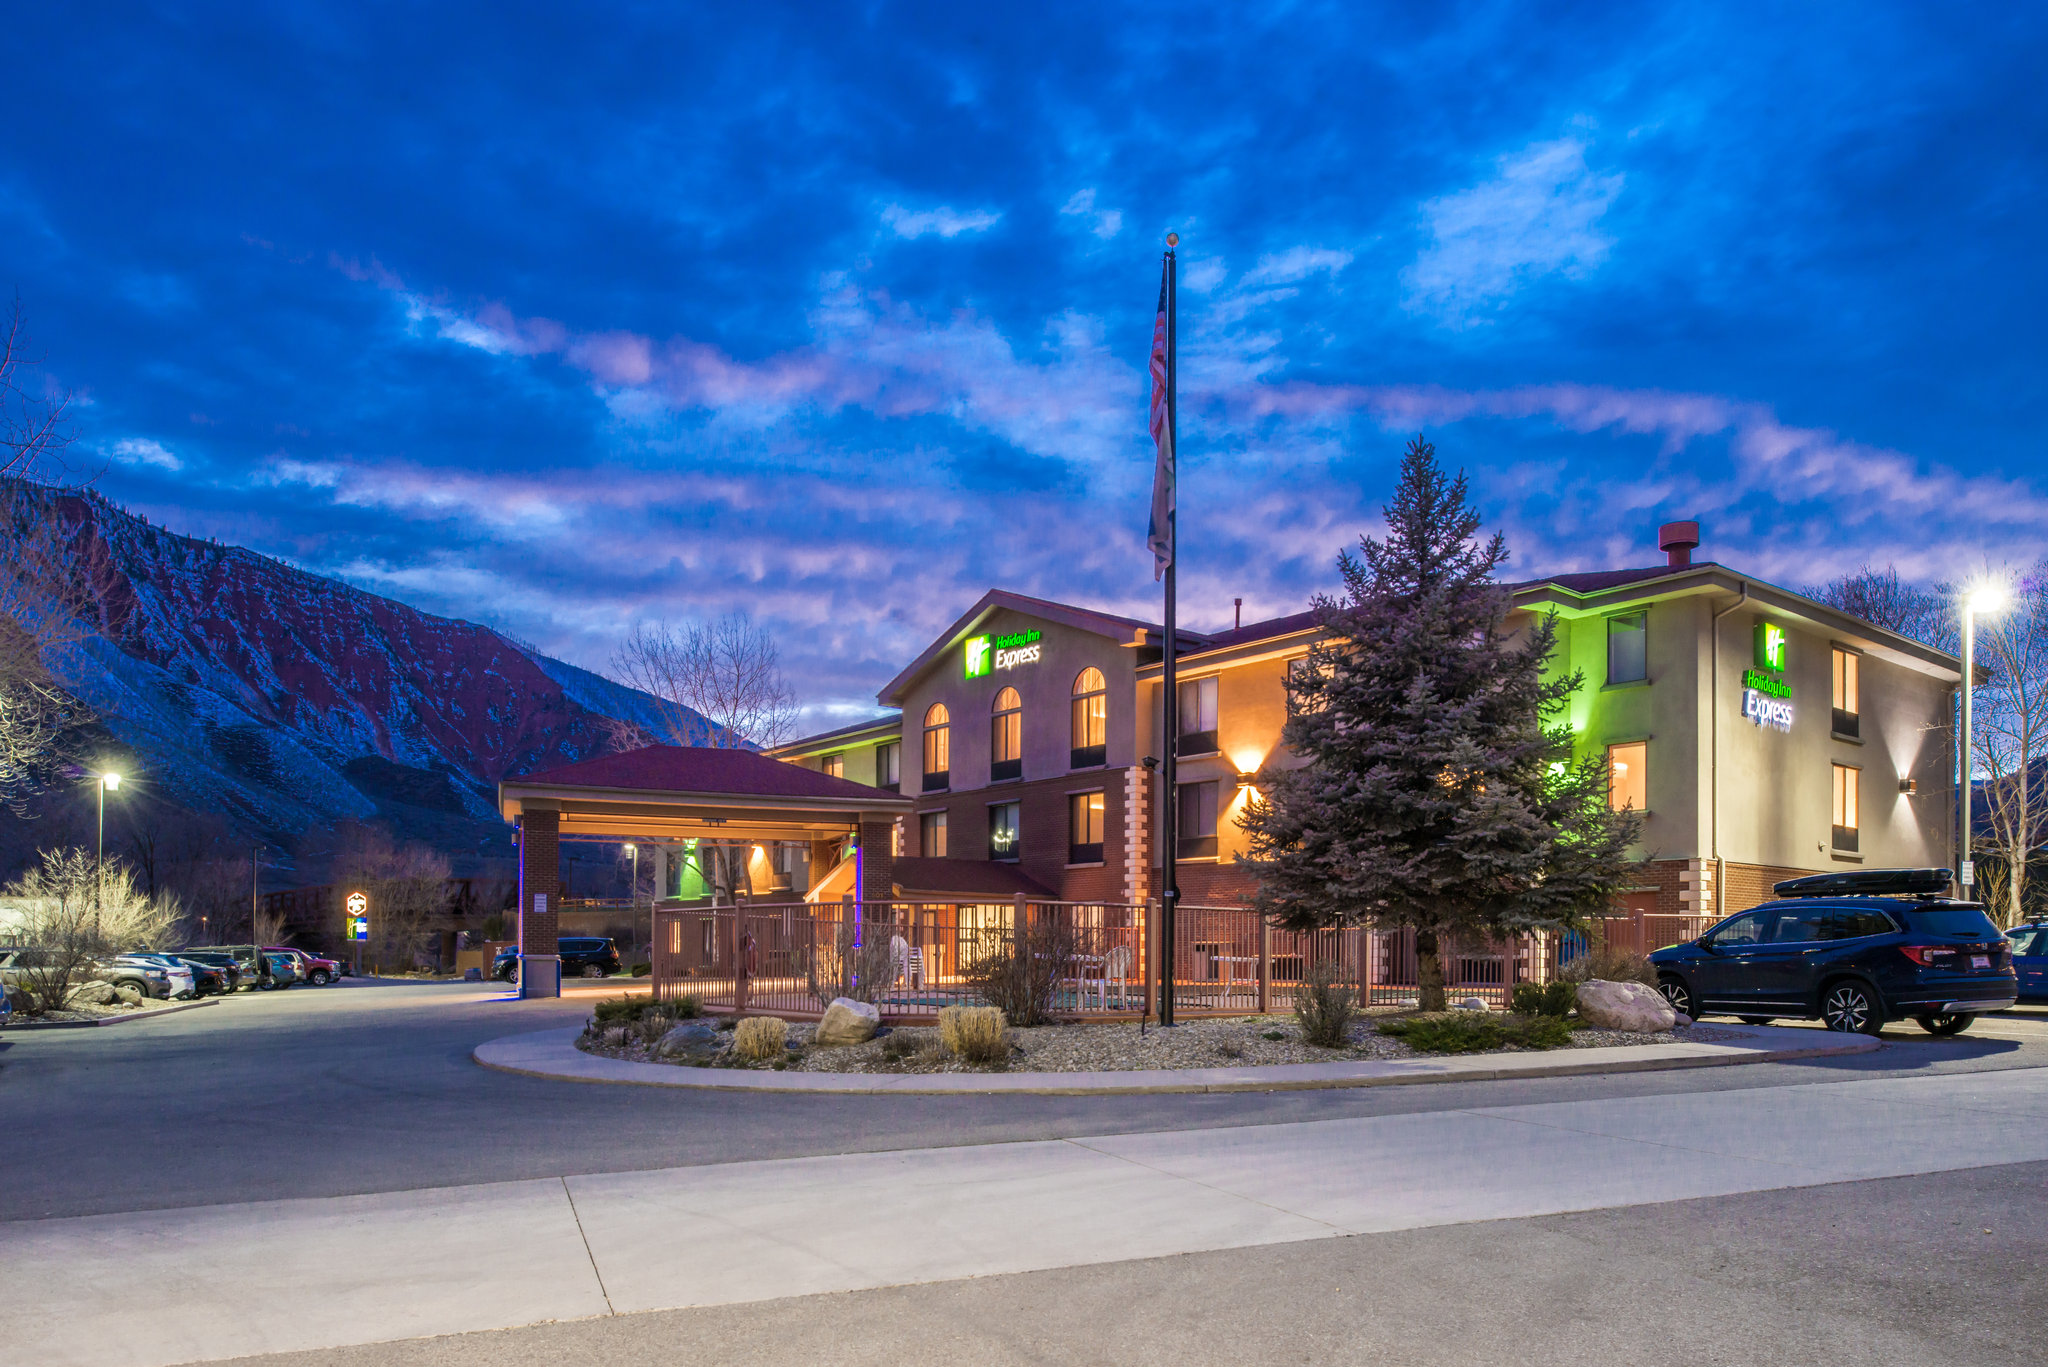 Holiday Inn Express - Glenwood Springs (Aspen Area)